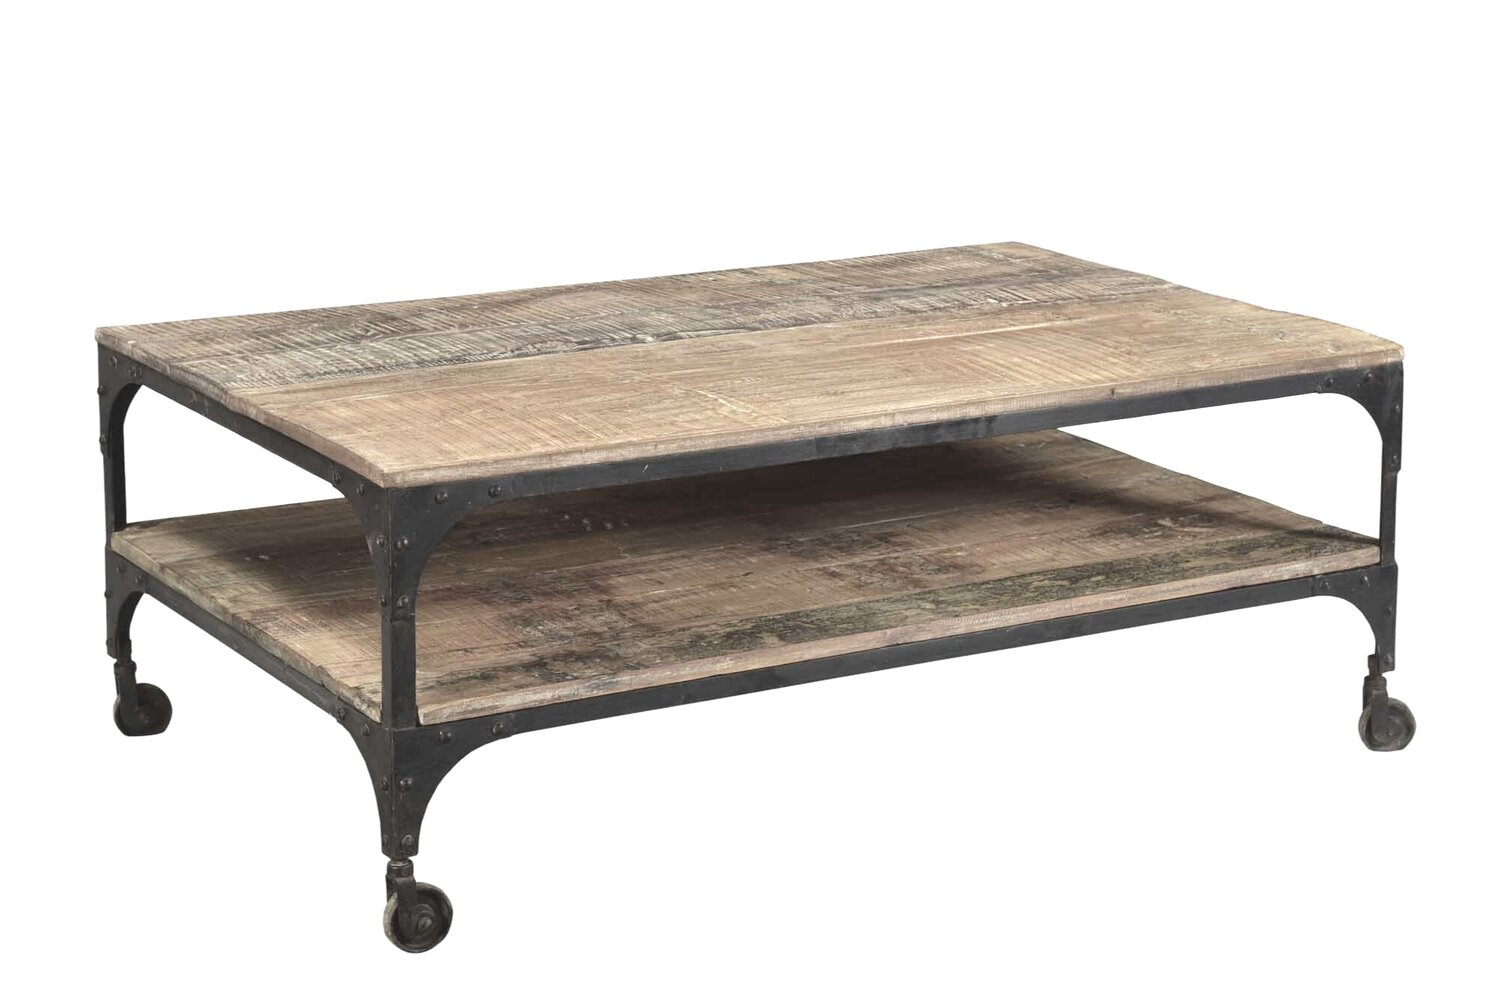 Industrial Iron And Hardwood Coffee Table Ha Veli Of Byron Bay